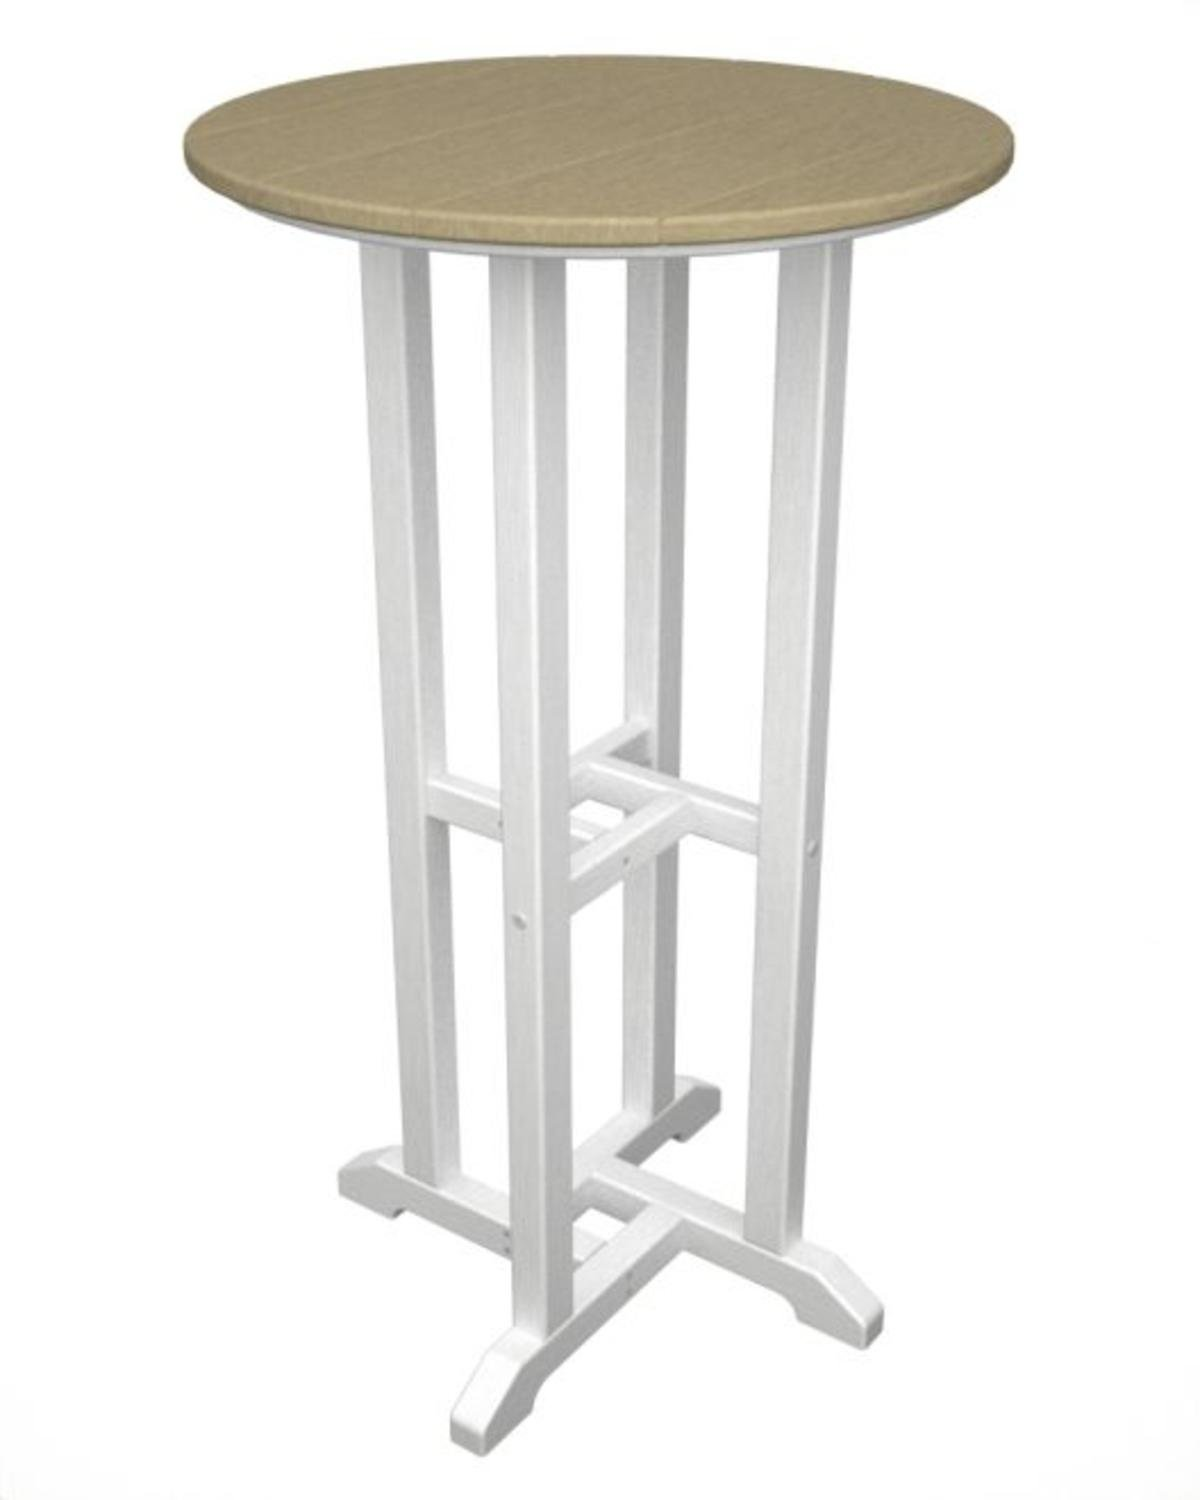 42'' Recycled Earth-Friendly Patio Bar Table - Light Brown with White Frame by Eco-Friendly Furnishings